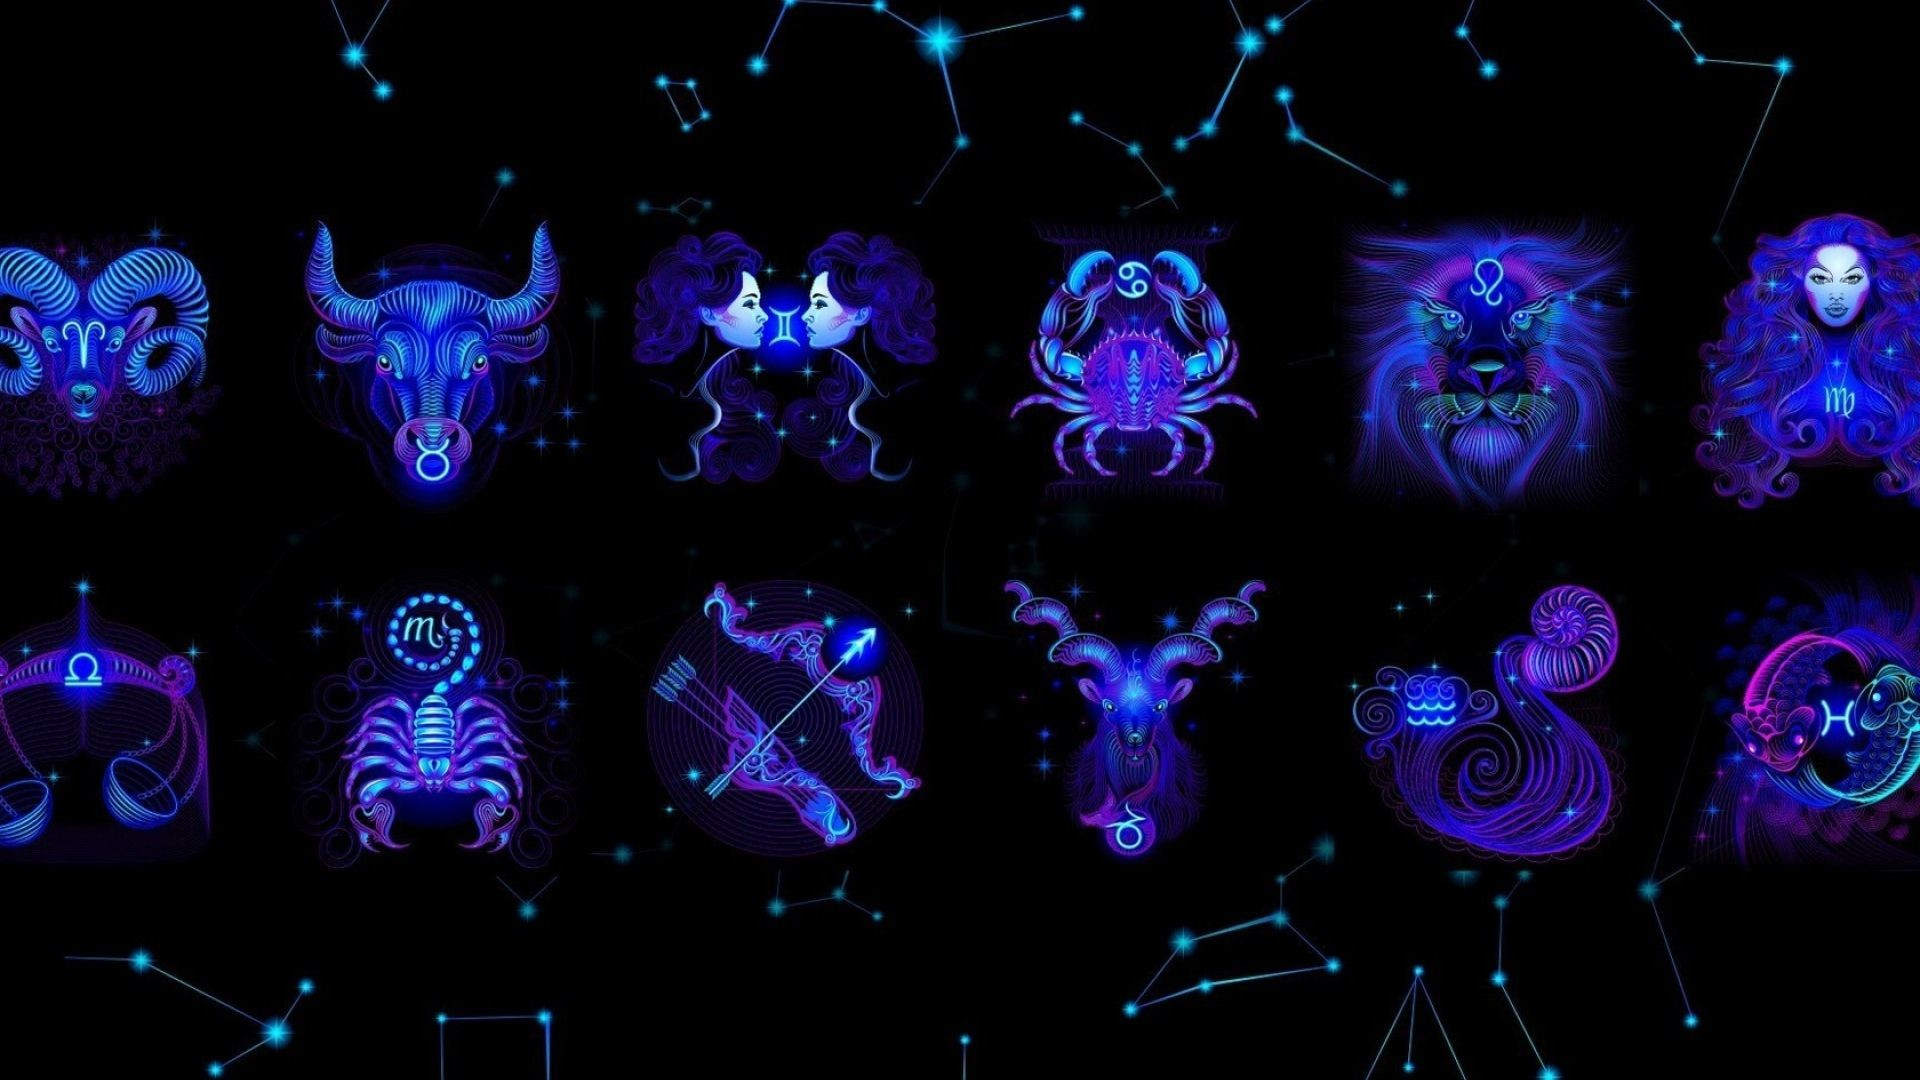 Res: 1920x1080, #Zodiac #Libra #Scorpio #Wallpaper | Minimalistic Wallpapers | Pinterest